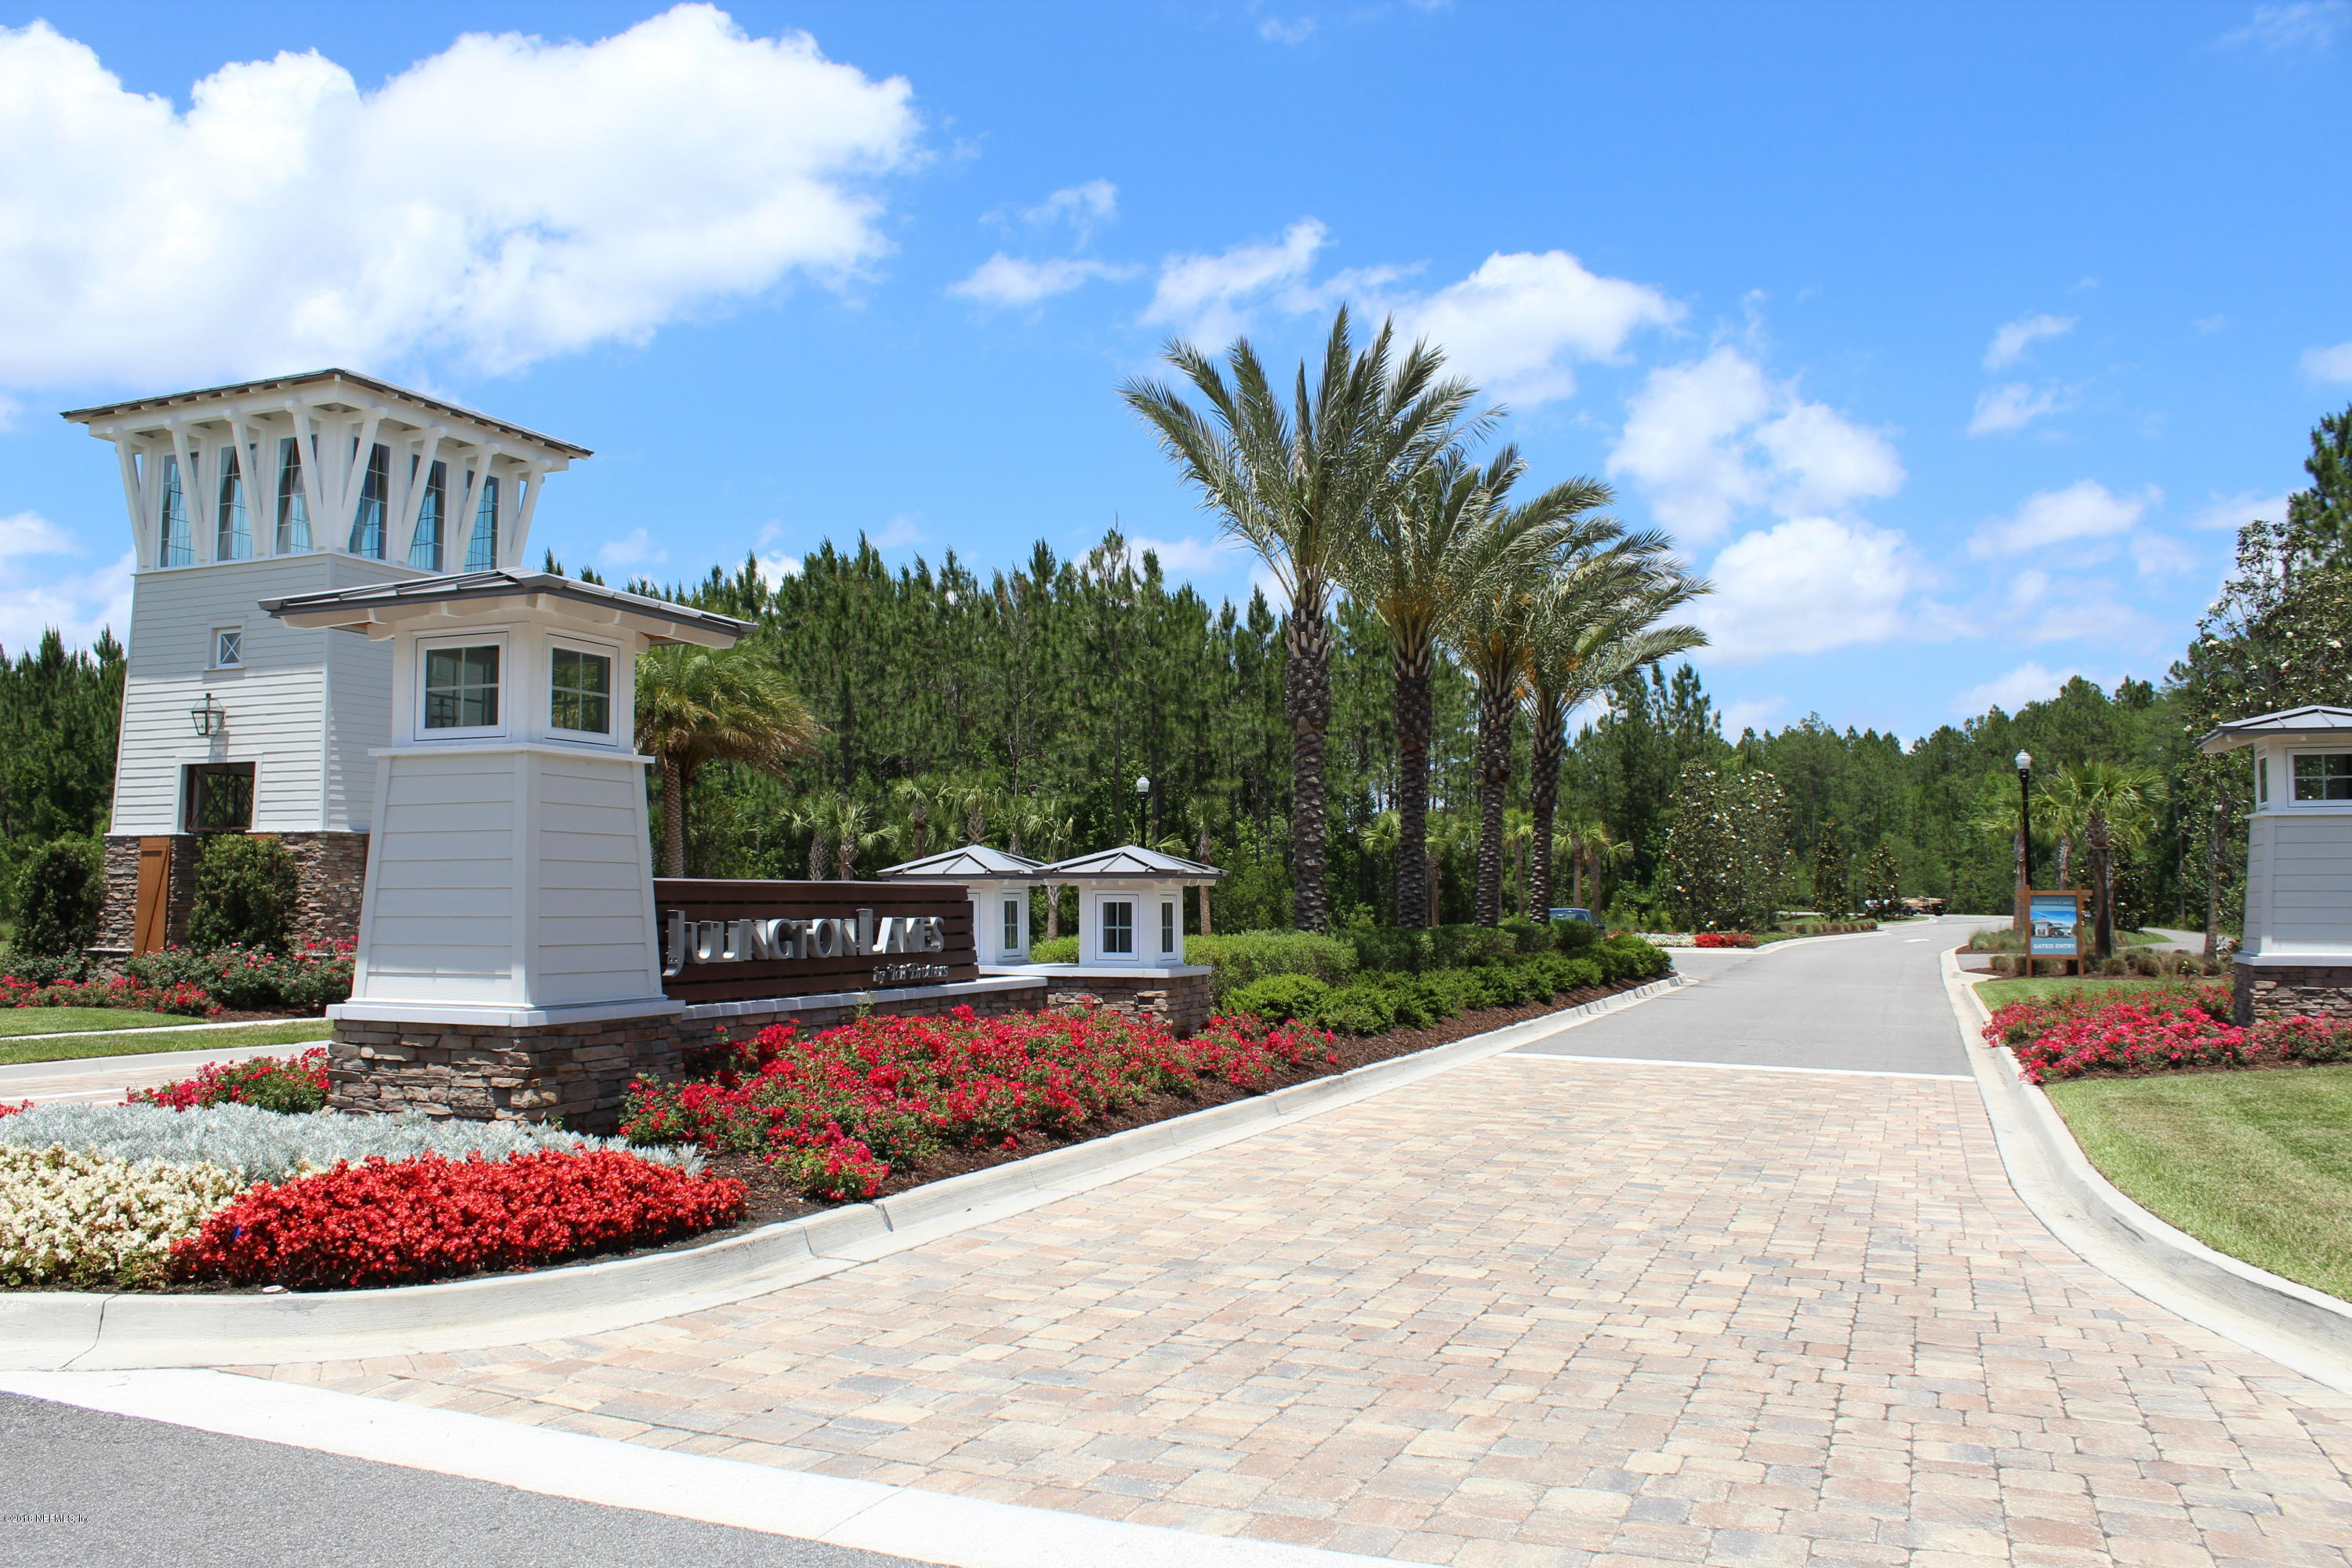 71 HONEY BLOSSOM, ST JOHNS, FLORIDA 32259, 4 Bedrooms Bedrooms, ,4 BathroomsBathrooms,Residential - single family,For sale,HONEY BLOSSOM,923699